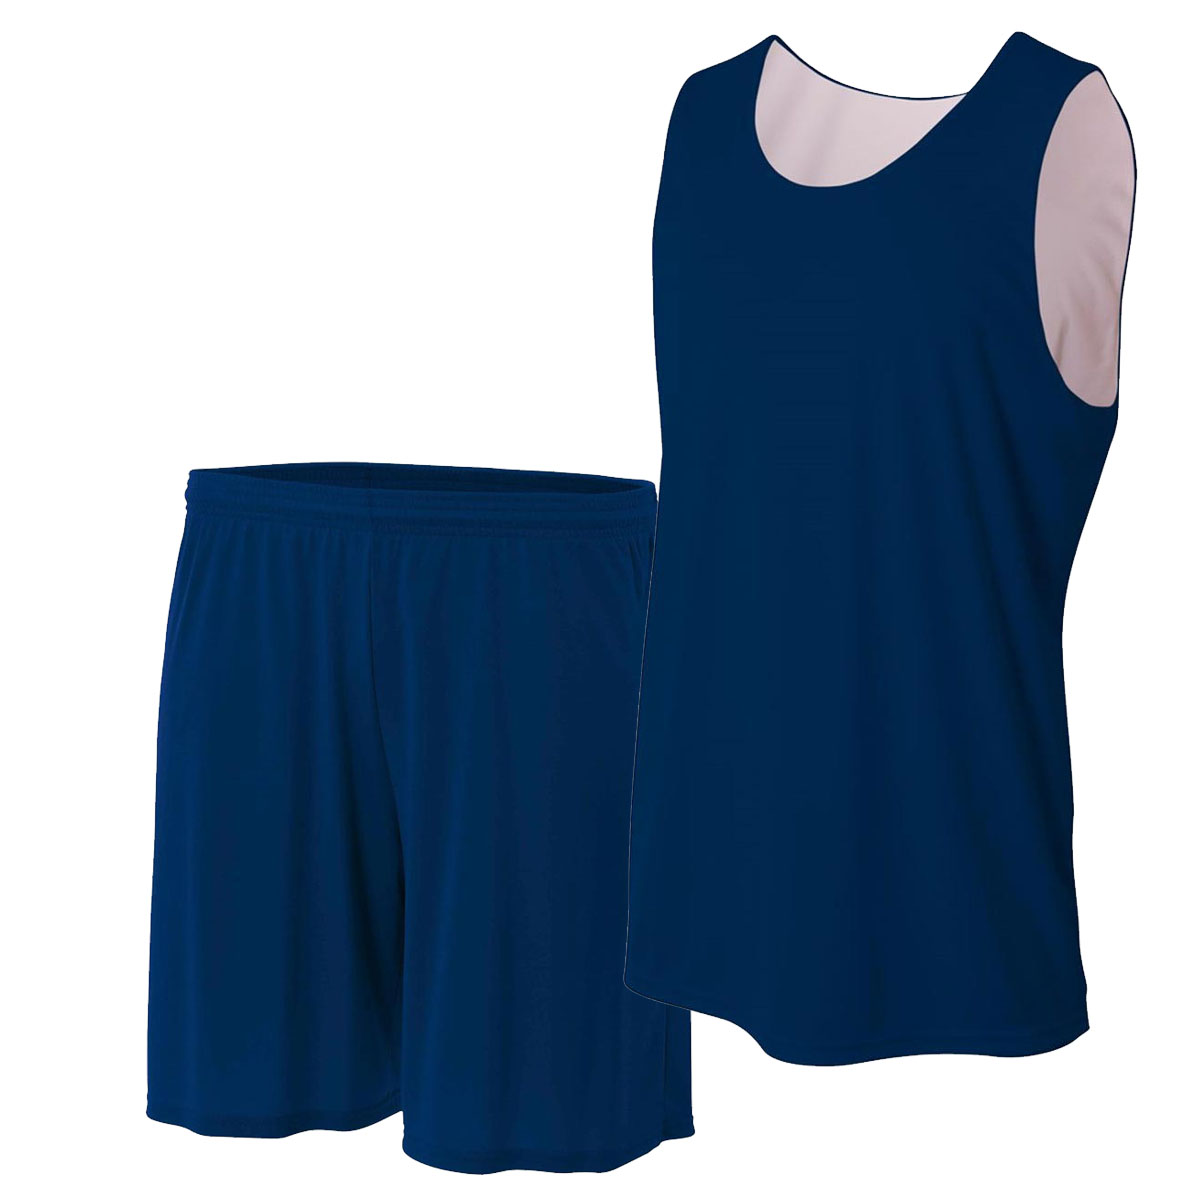 Reversible Basketball Uniforms Manufacturers in United-states-of-america